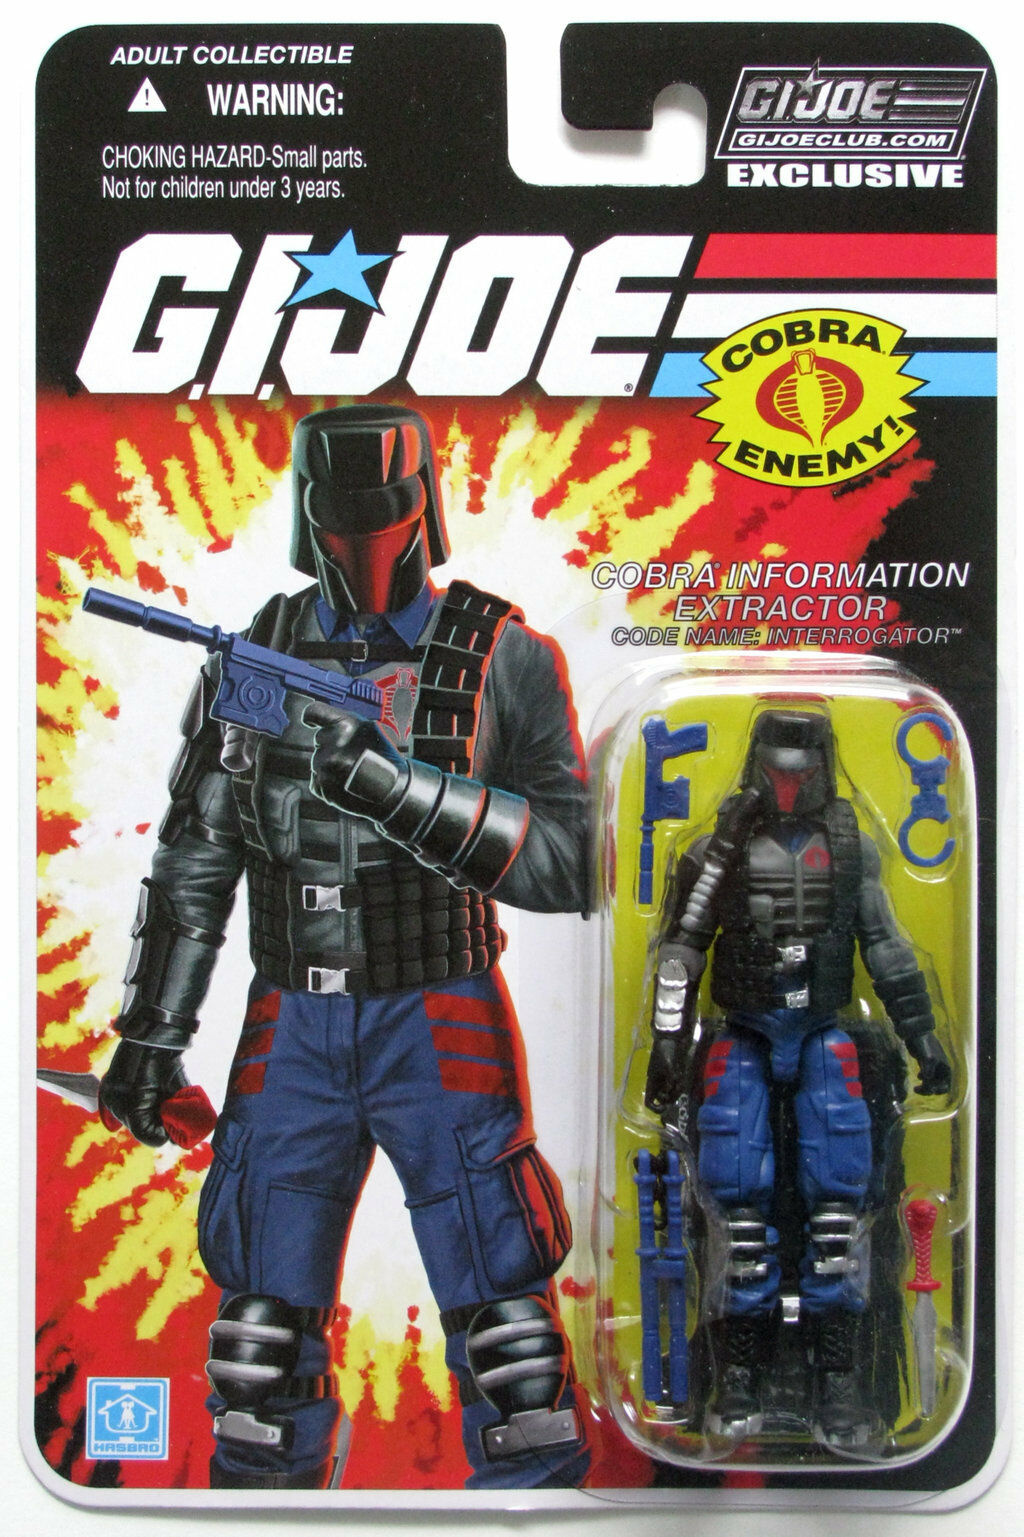 GI JOE COLLECTOR CLUB interrogateur Comme neuf on Card FSS Exclusive Action Figure